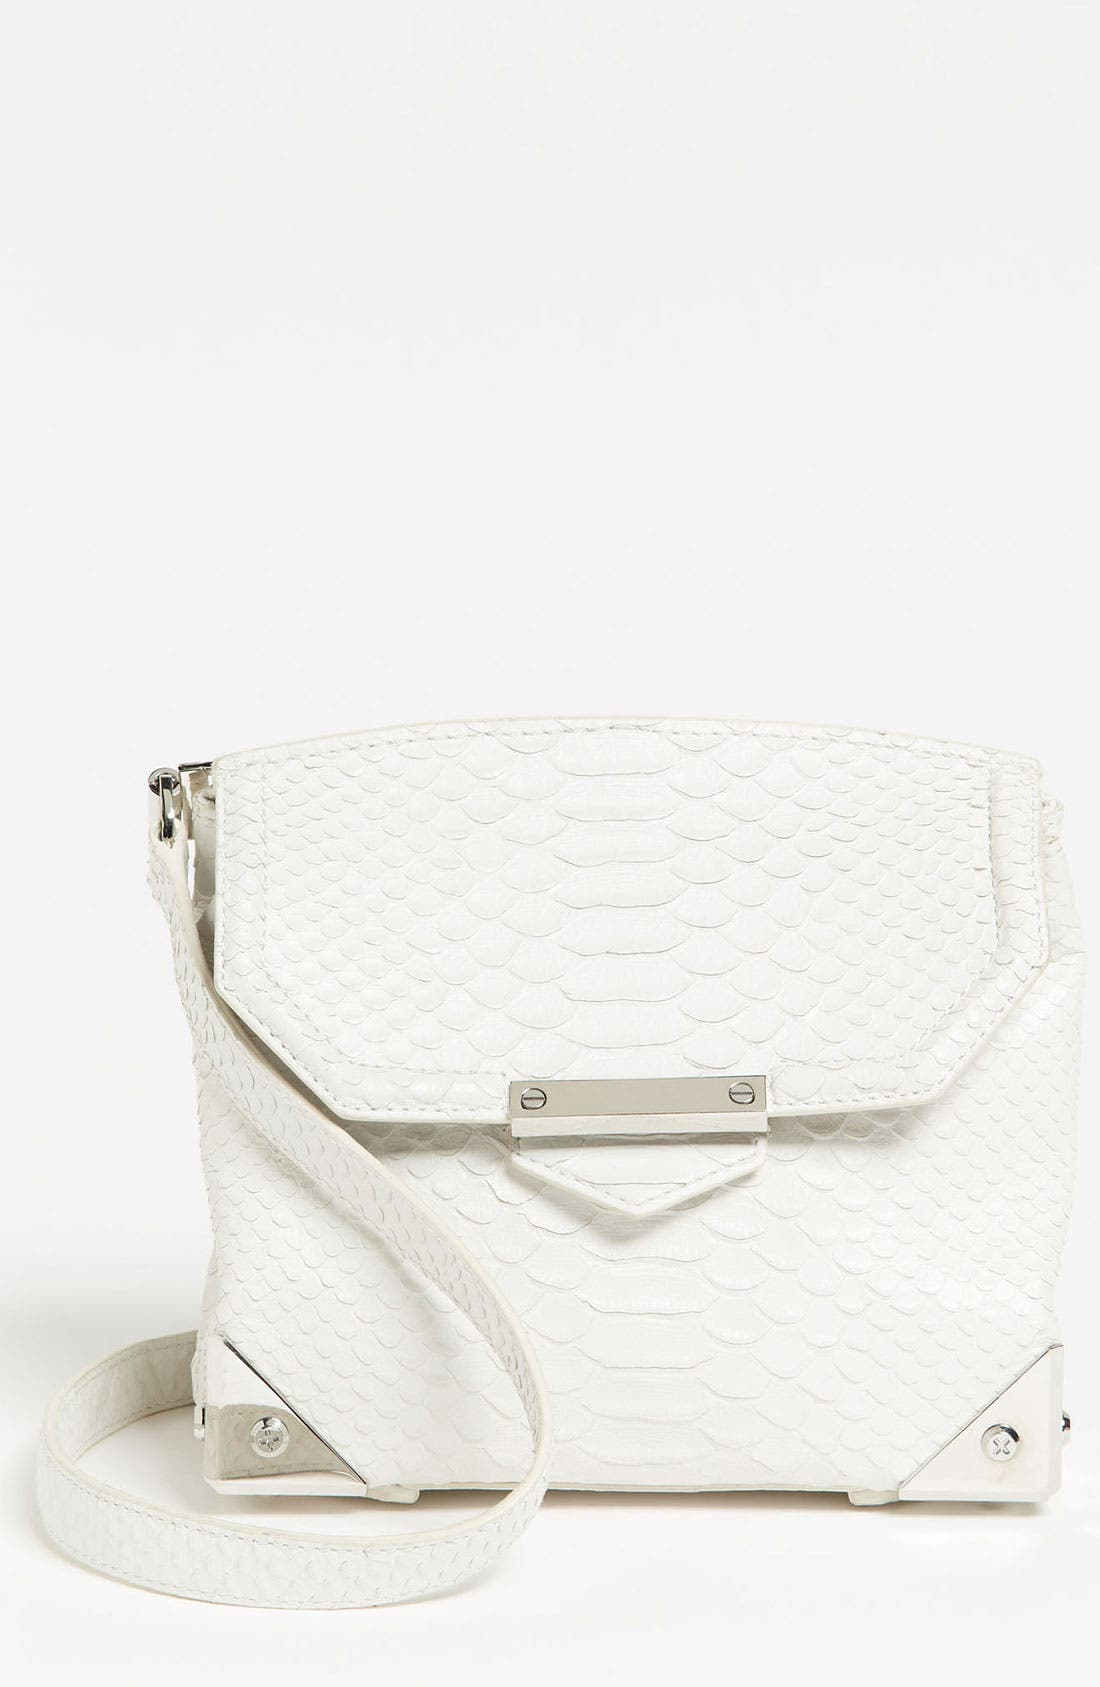 Alternate Image 1 Selected - Alexander Wang 'Marion - Prisma' Python Embossed Leather Crossbody Bag